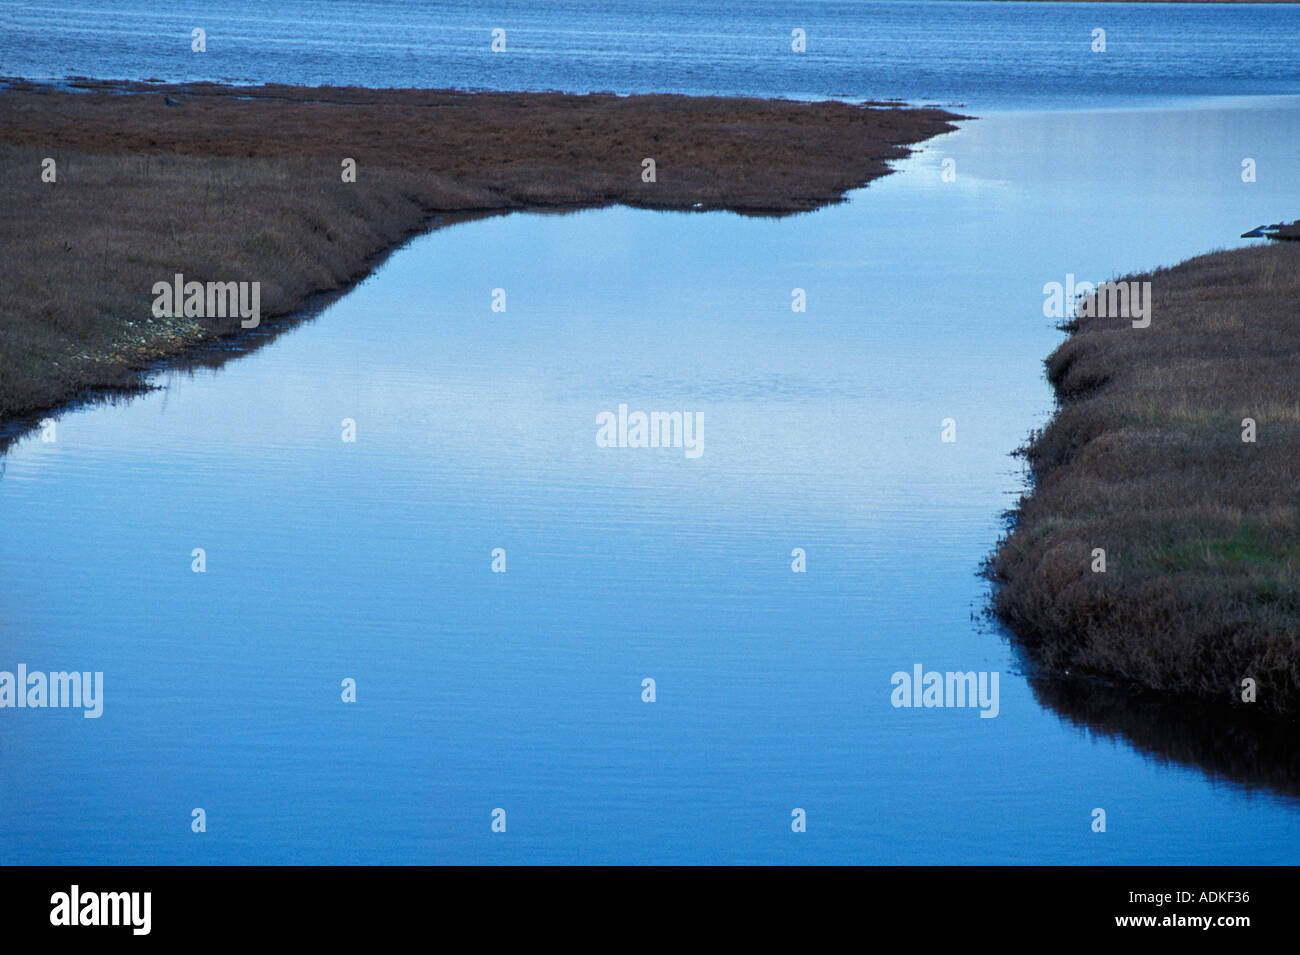 Canal Flowing Into Large Body Of Water - Stock Image